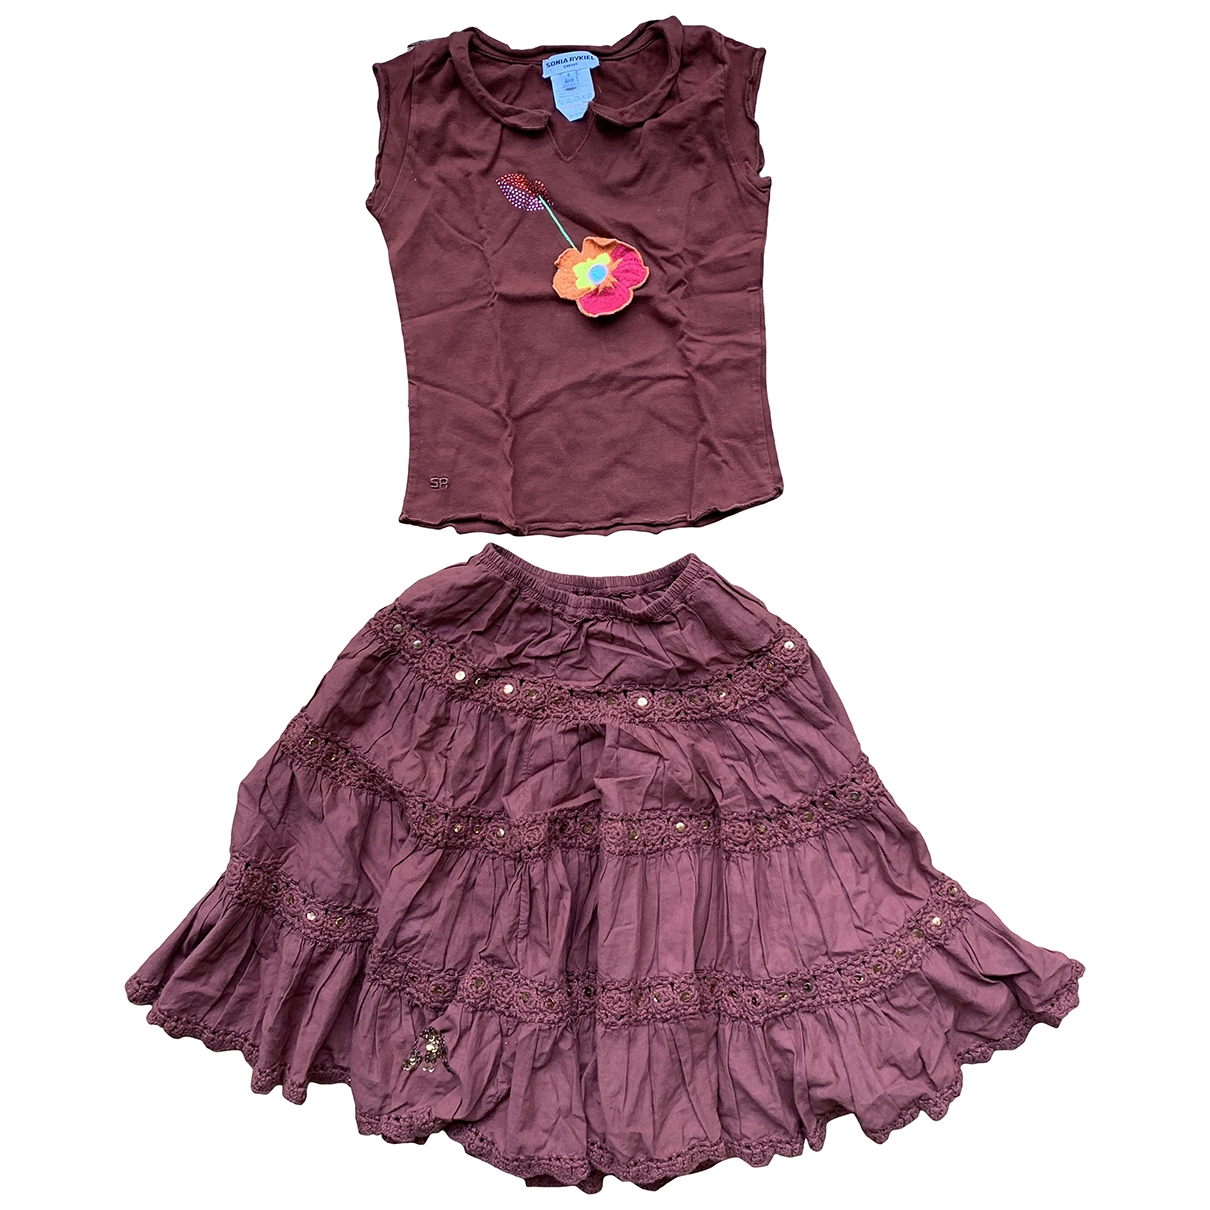 Sonia Rykiel \N Burgundy Cotton Outfits for Kids 6 years - up to 114cm FR